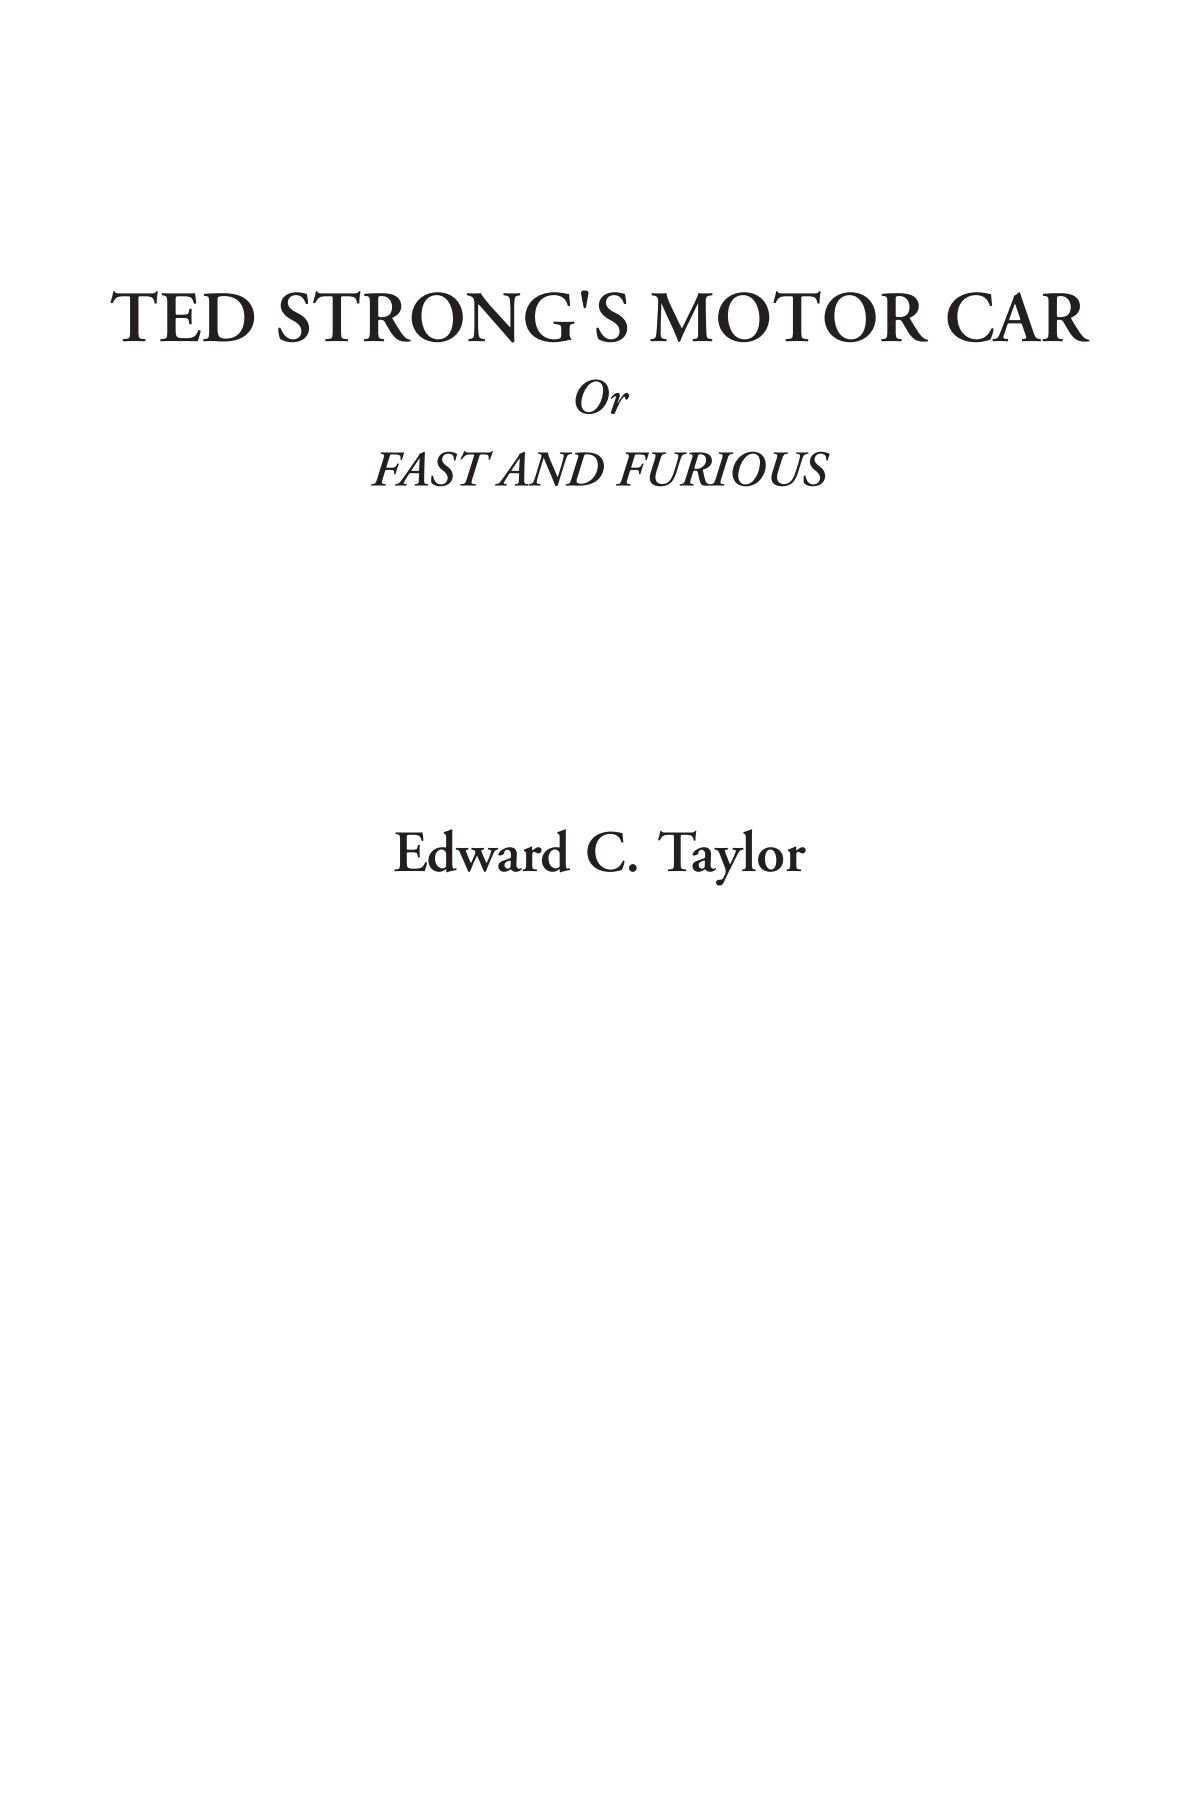 Download Ted Strong's Motor Car Or Fast and Furious ebook